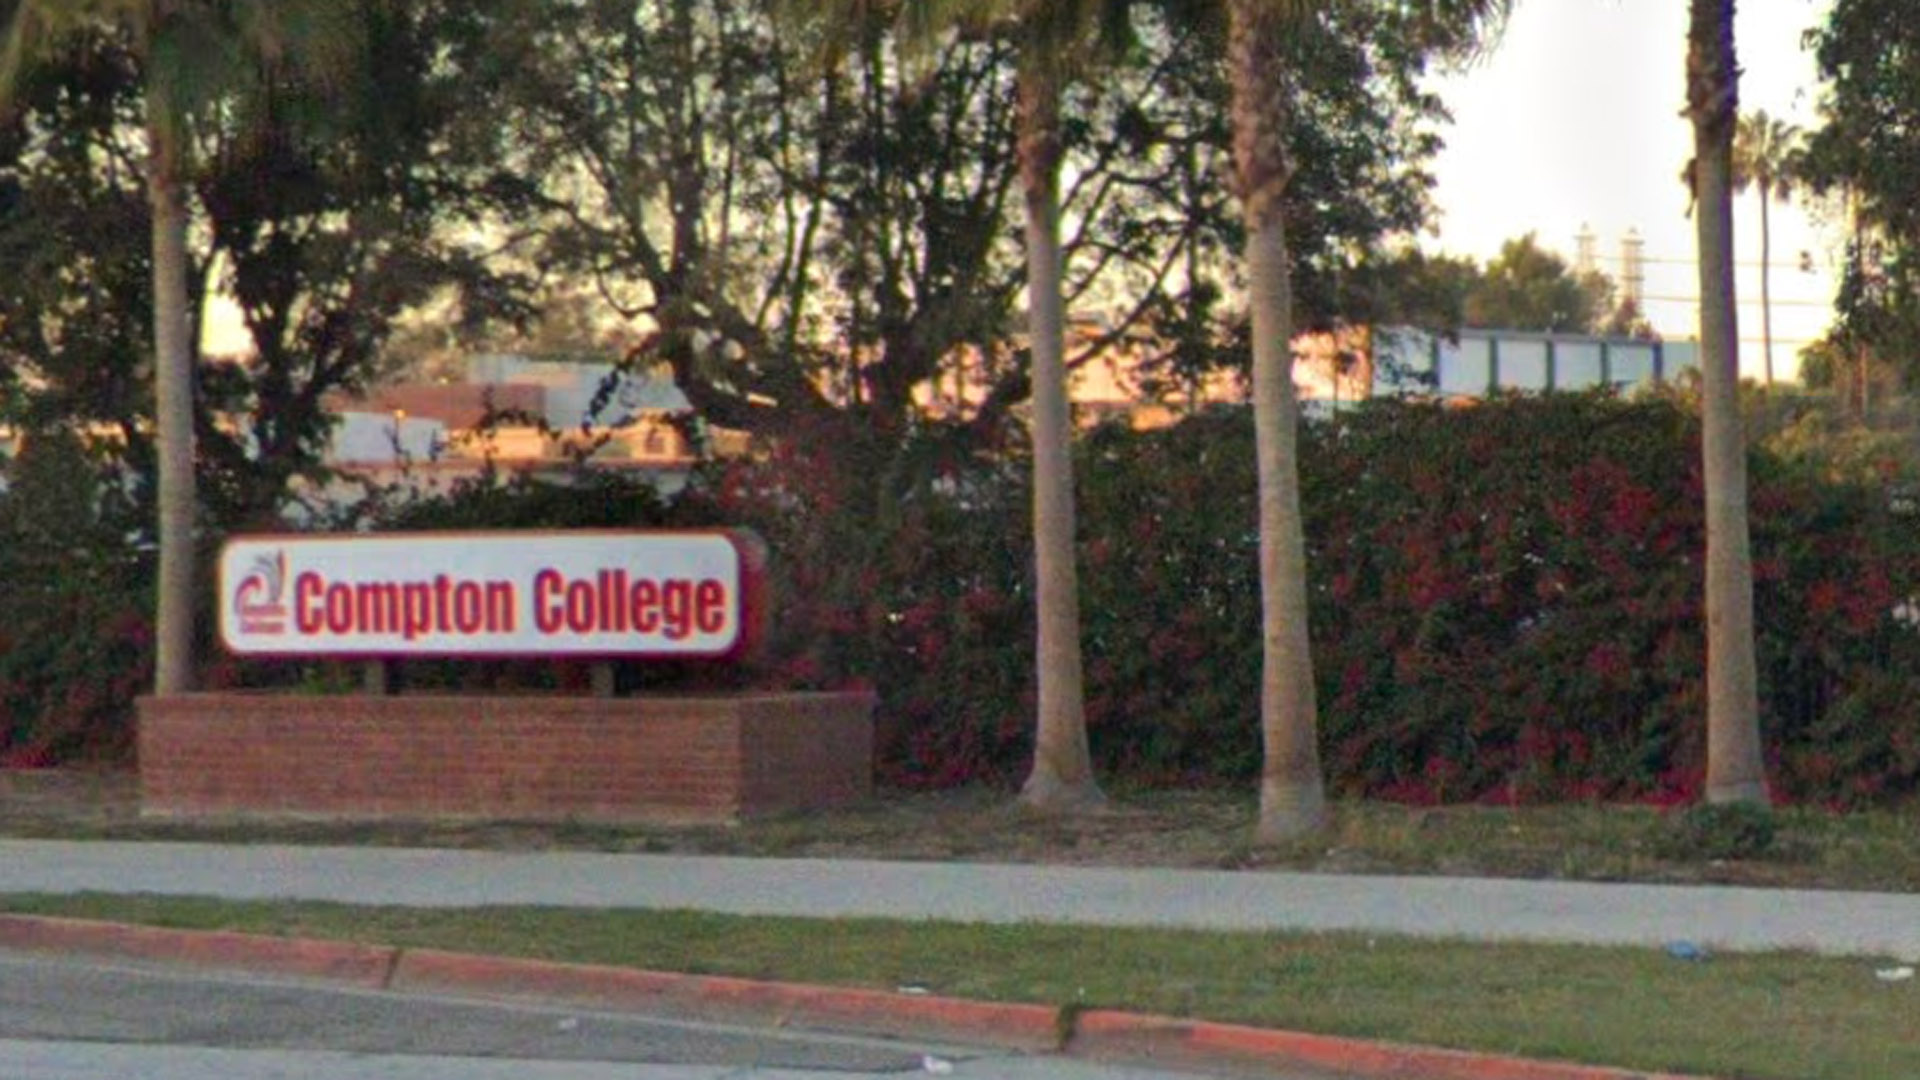 An Google Maps image shows a sign for Compton College in Compton.